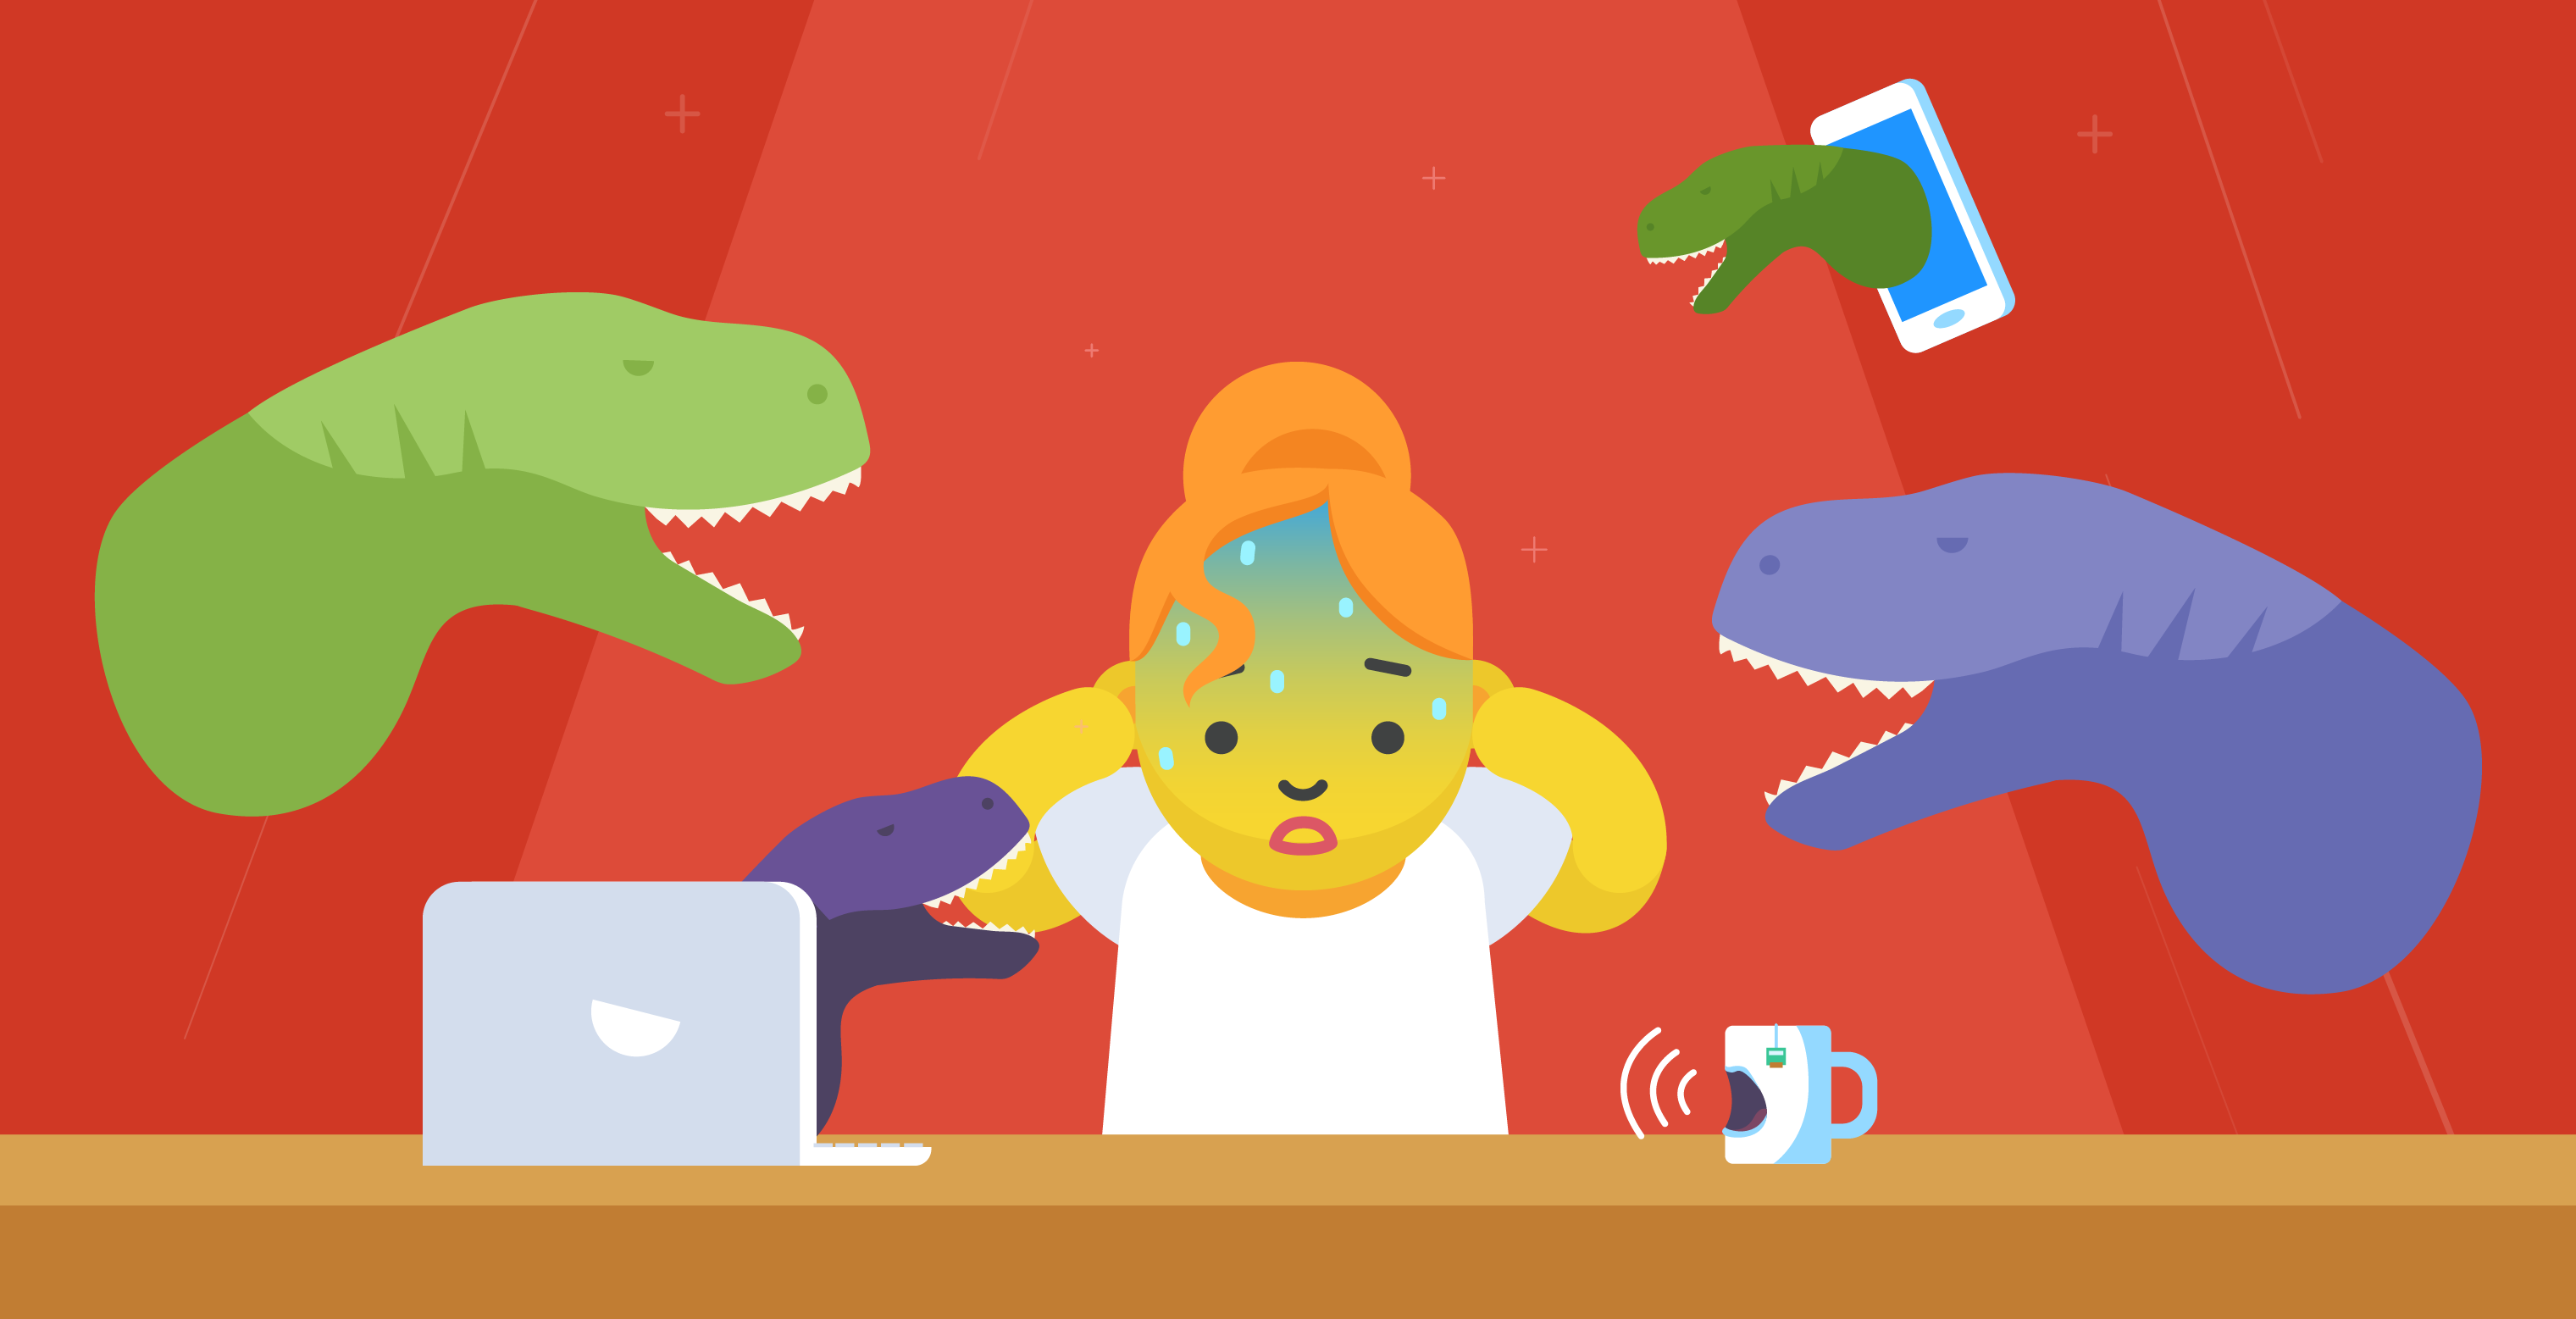 Cyberbullying in the workplace